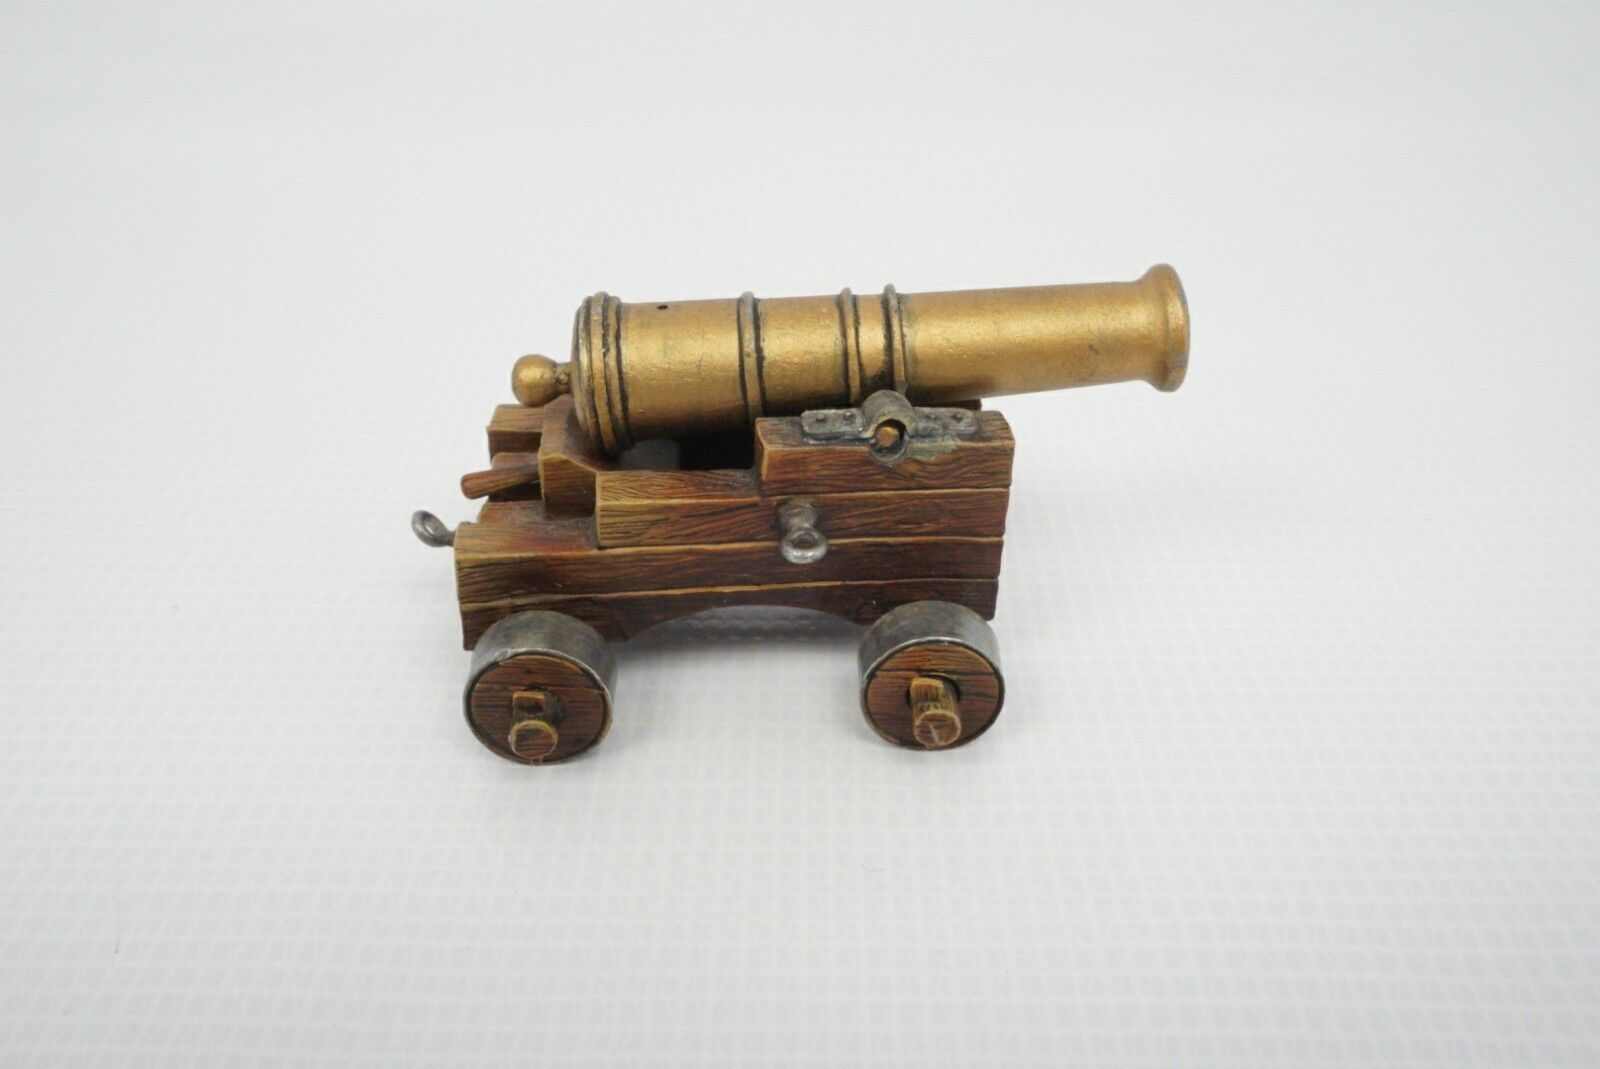 54mm Scale St. Petersburg Small Fort Canon Metal Napoleonic Painted Cannon- Rare